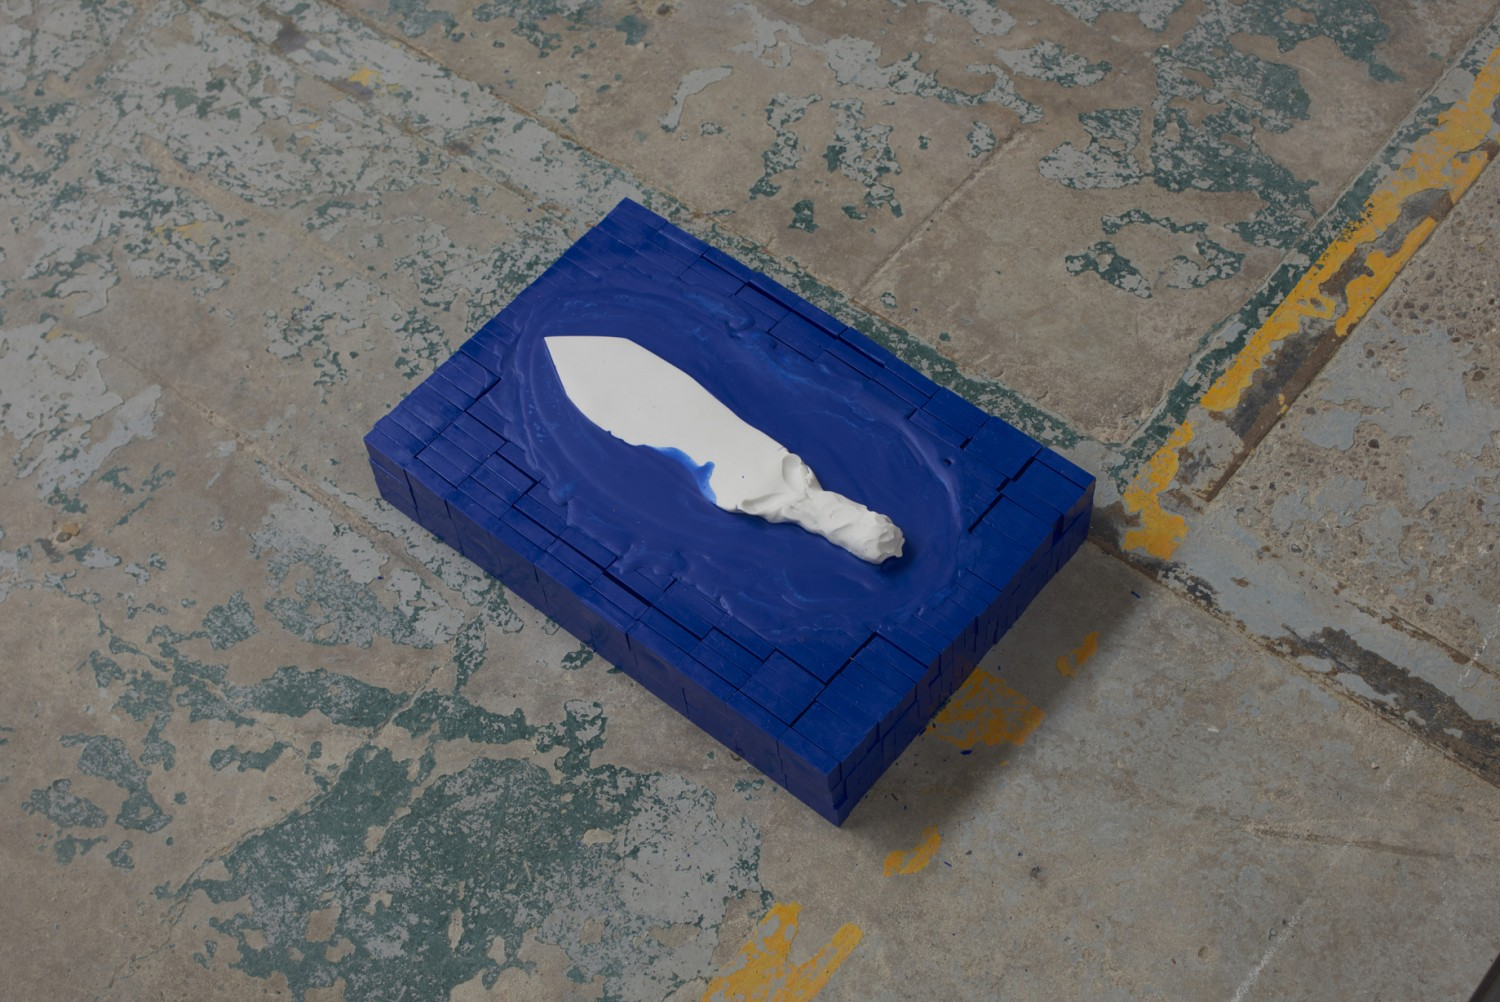 Bethan Lloyd Worthington, The Bridestones, British Ceramics Biennial